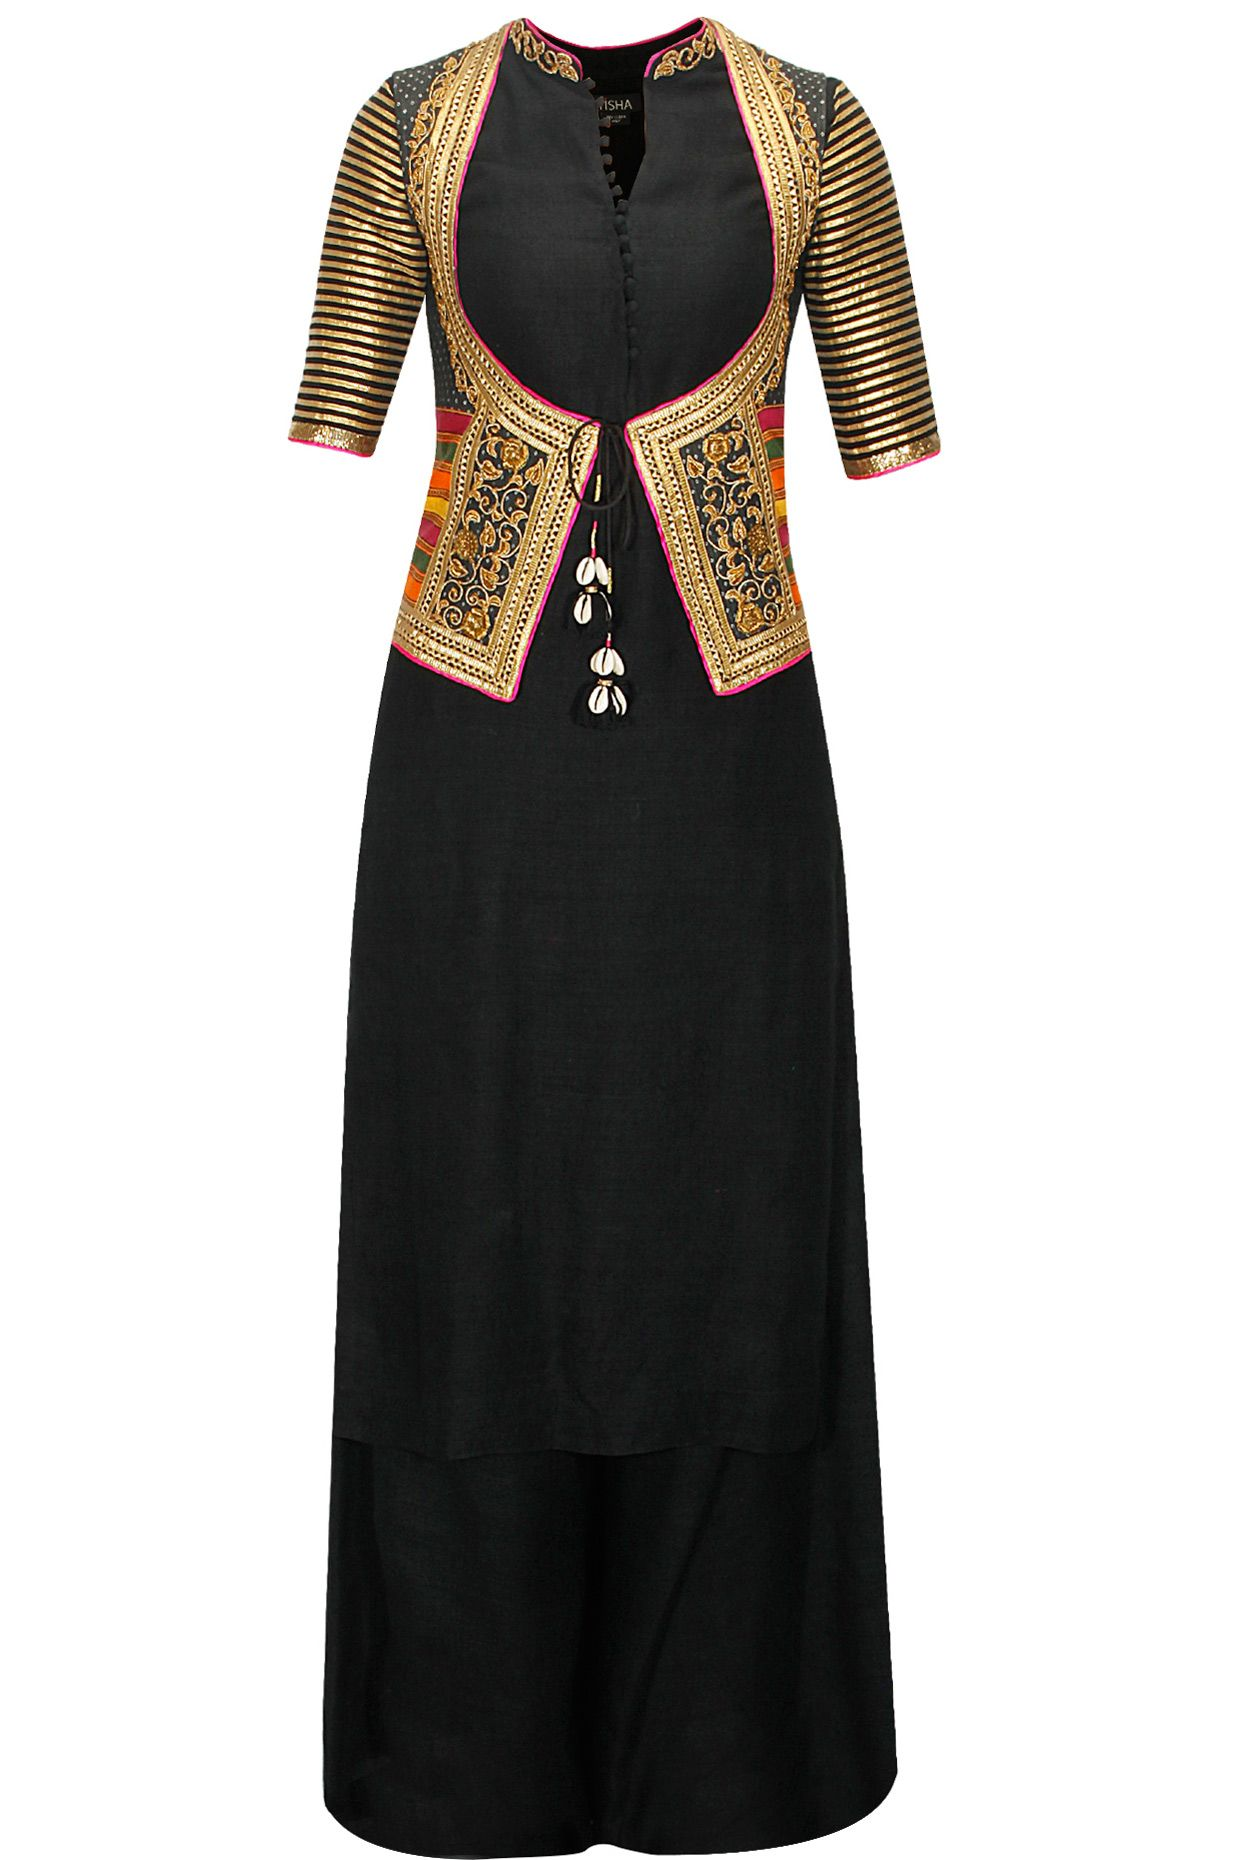 Black cotton kurta set with embroiderd jacket koti available only at